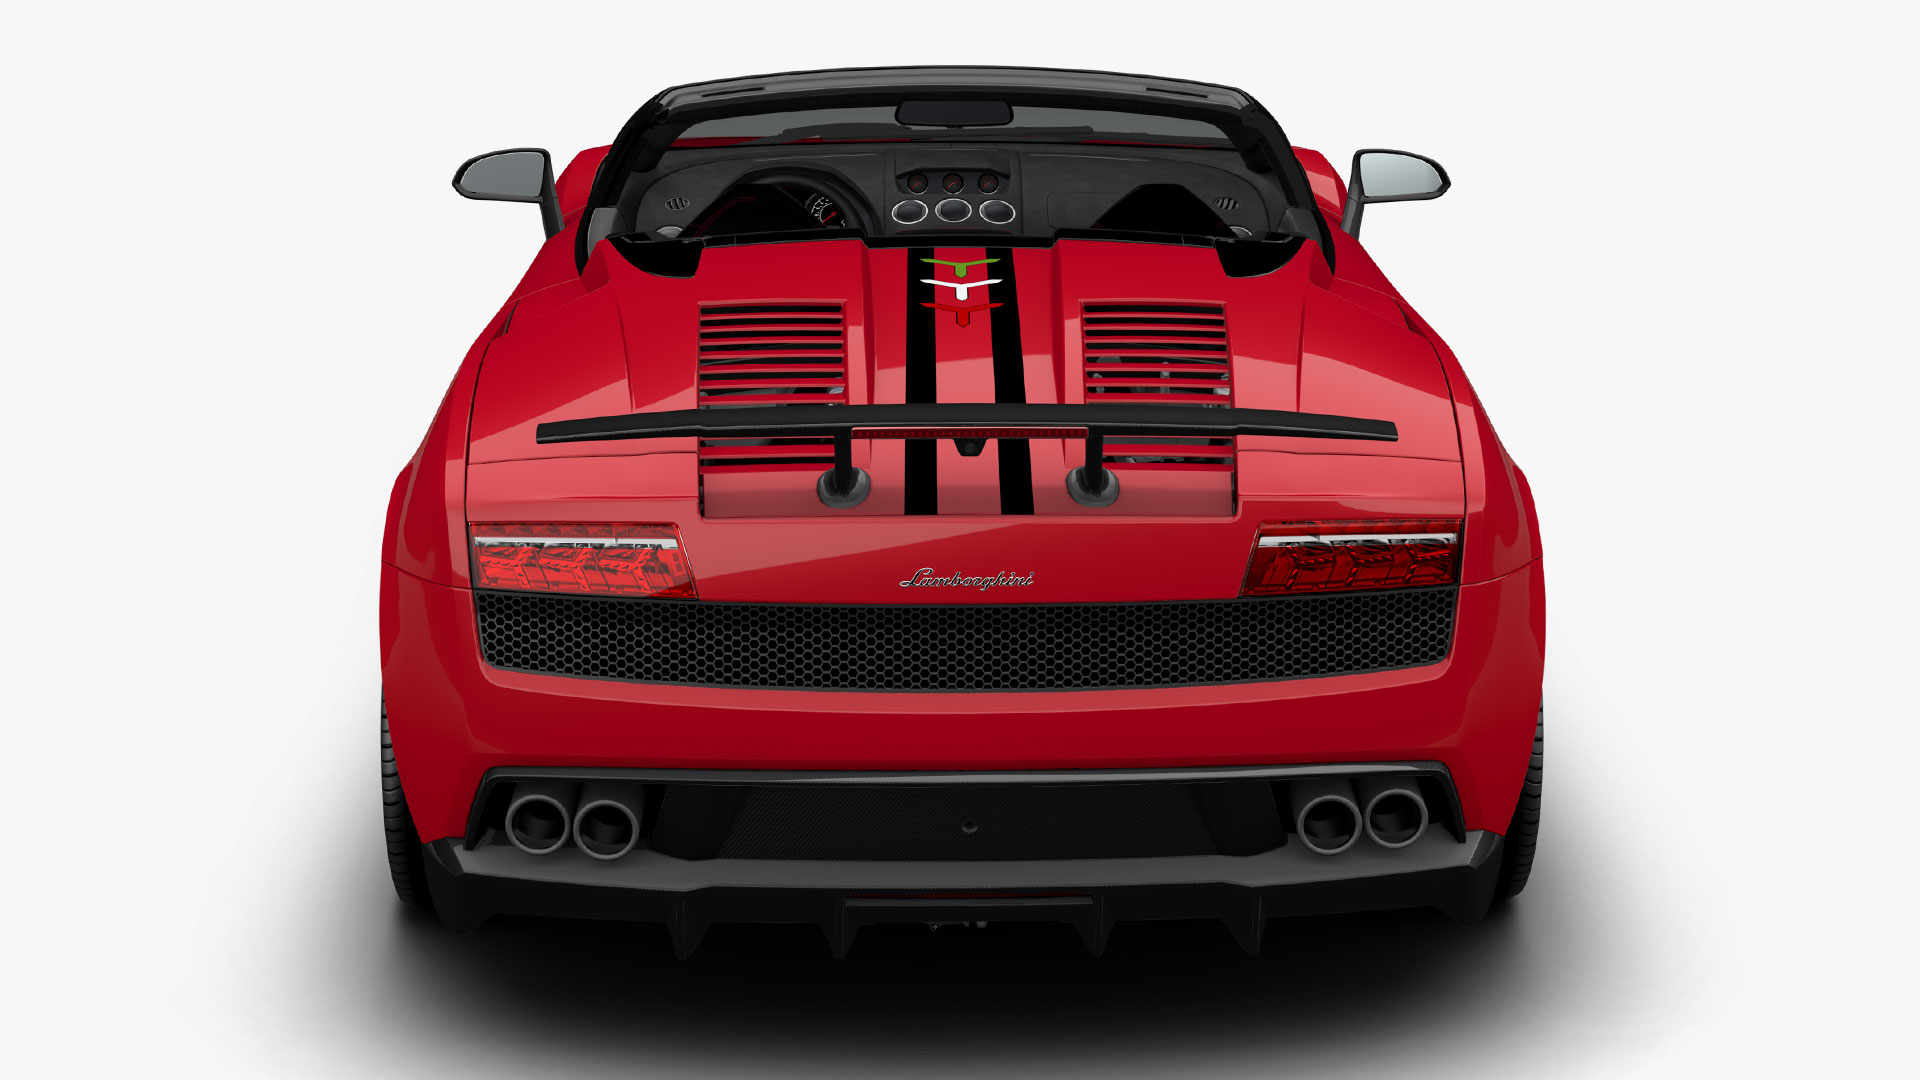 2014 Lamborghini Gallardo LP 570 4 Performante Edizione Tecnica News And  Information